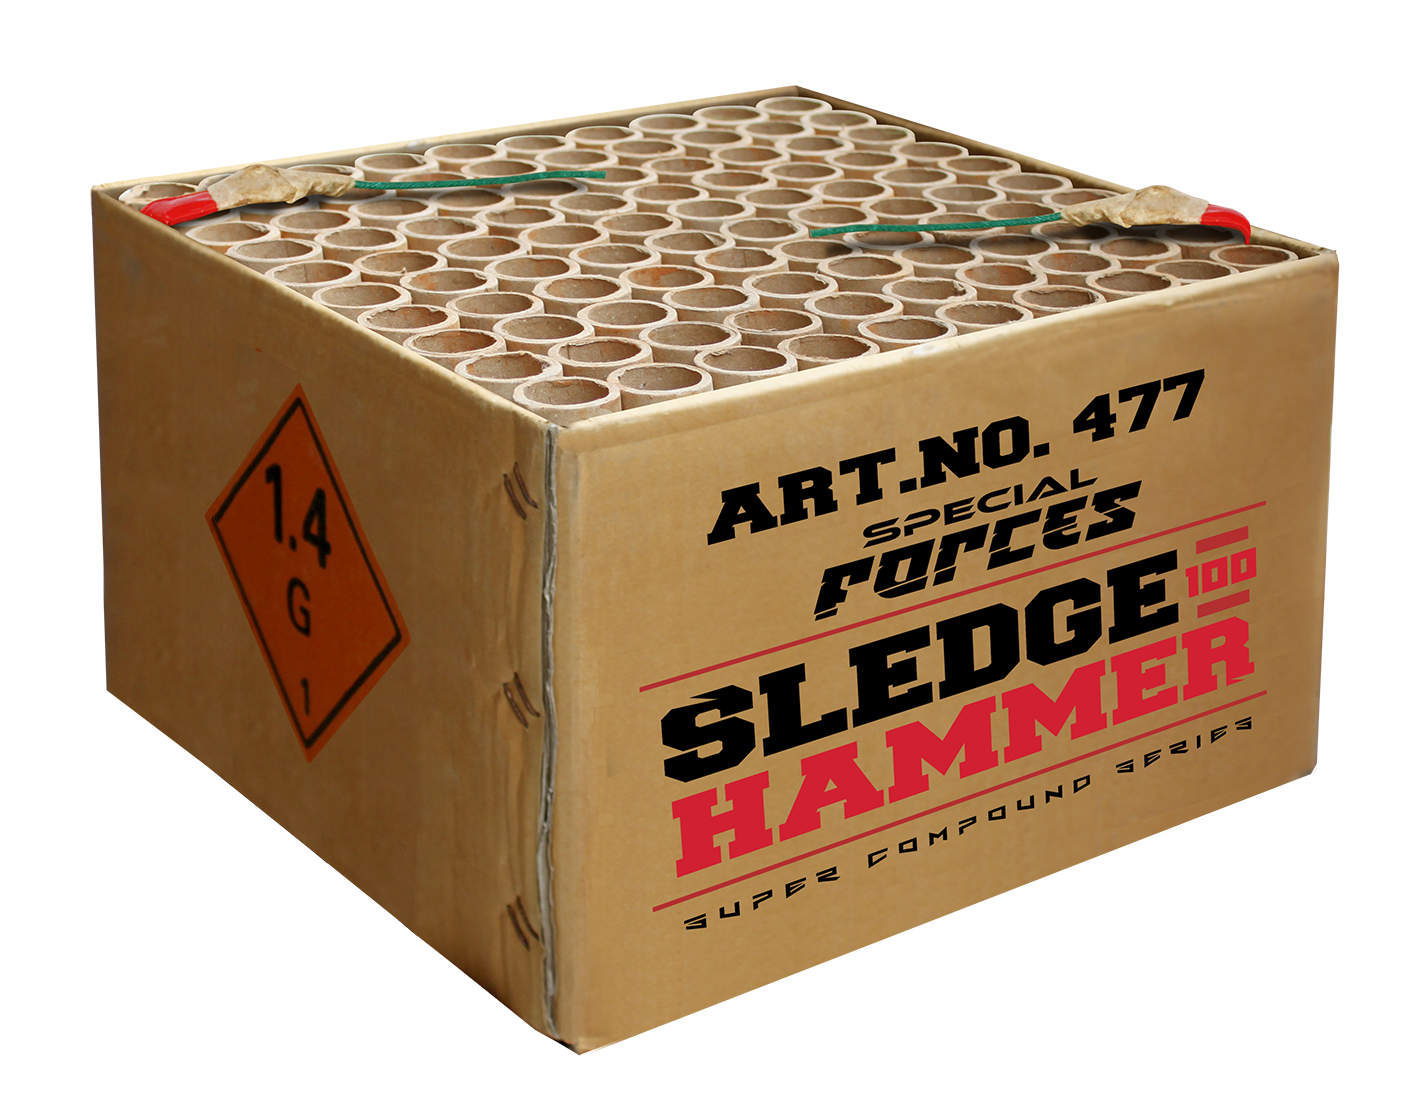 ACTIE! Special forces Sledgehammer